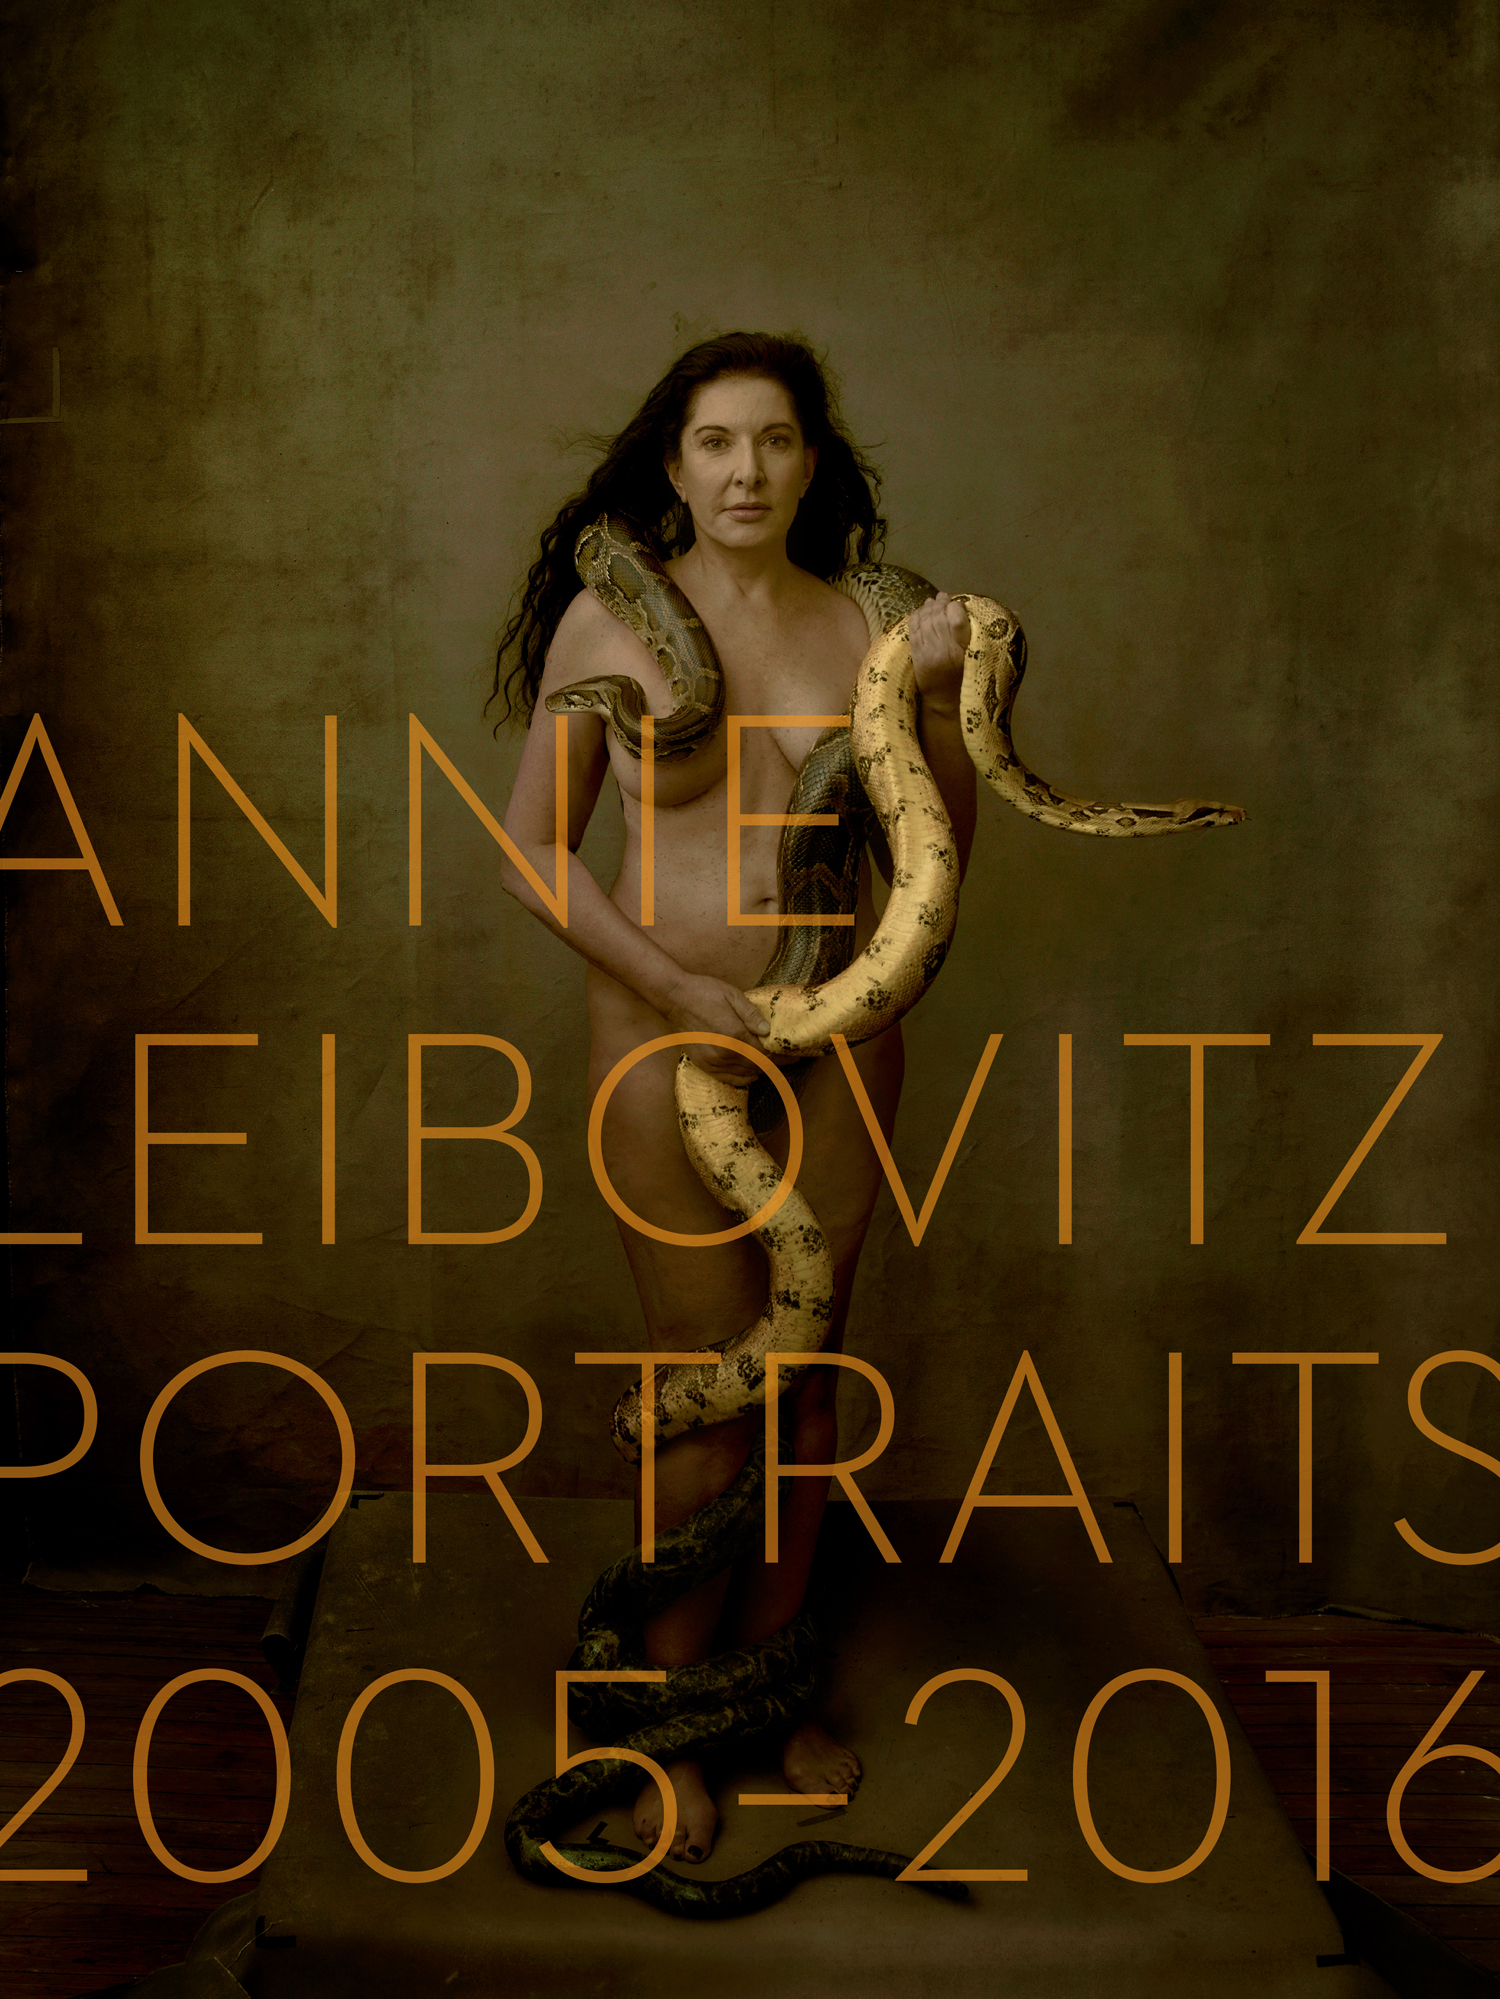 Annie Leibovitz: Portraits 2005–2016, by Annie Leibovitz with an essay by Alexandra Fuller. Published by Phaidon.